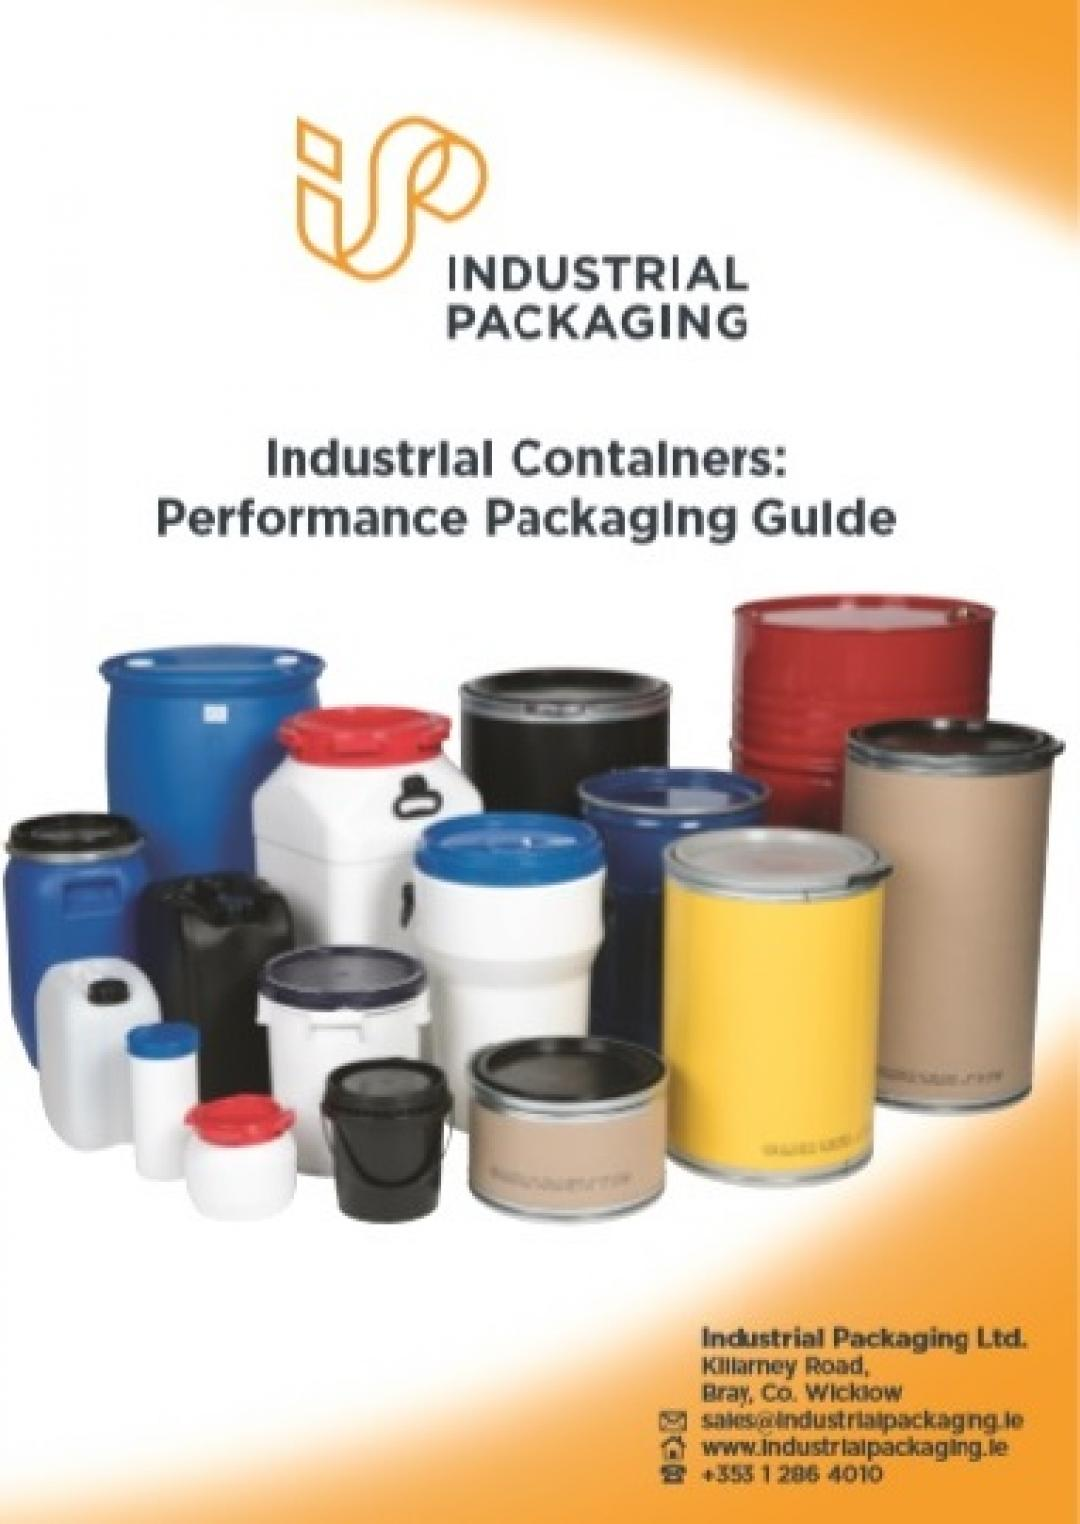 Cover of brochure listing industrial containers